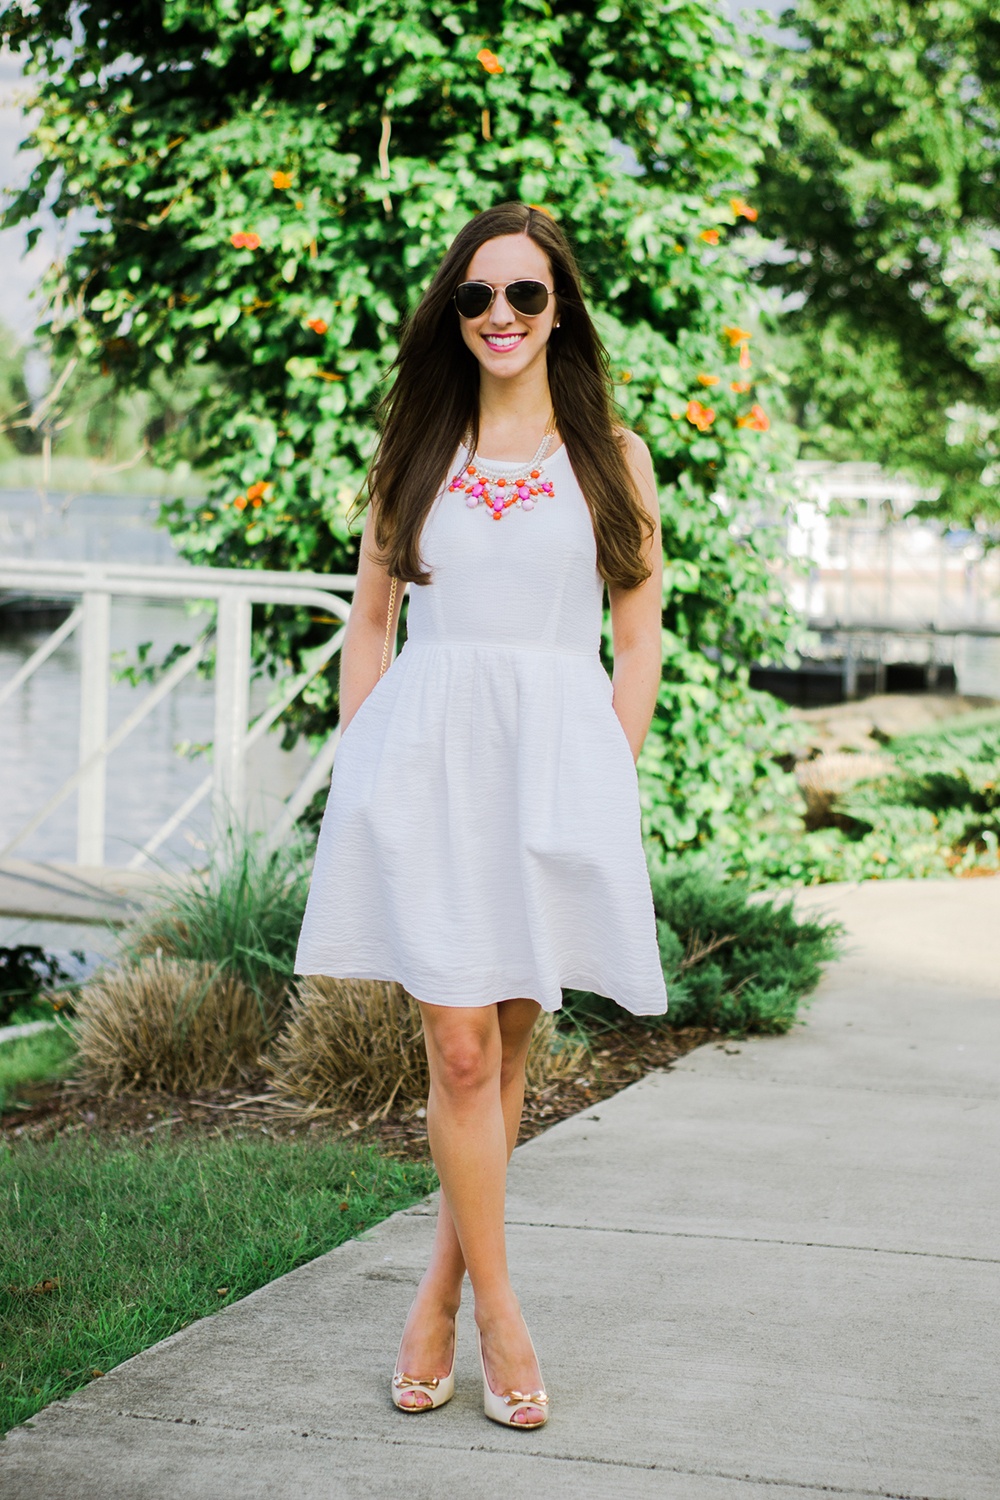 How to Style a Little White Dress | Simply Jessica Marie for Best Friends For Frosting